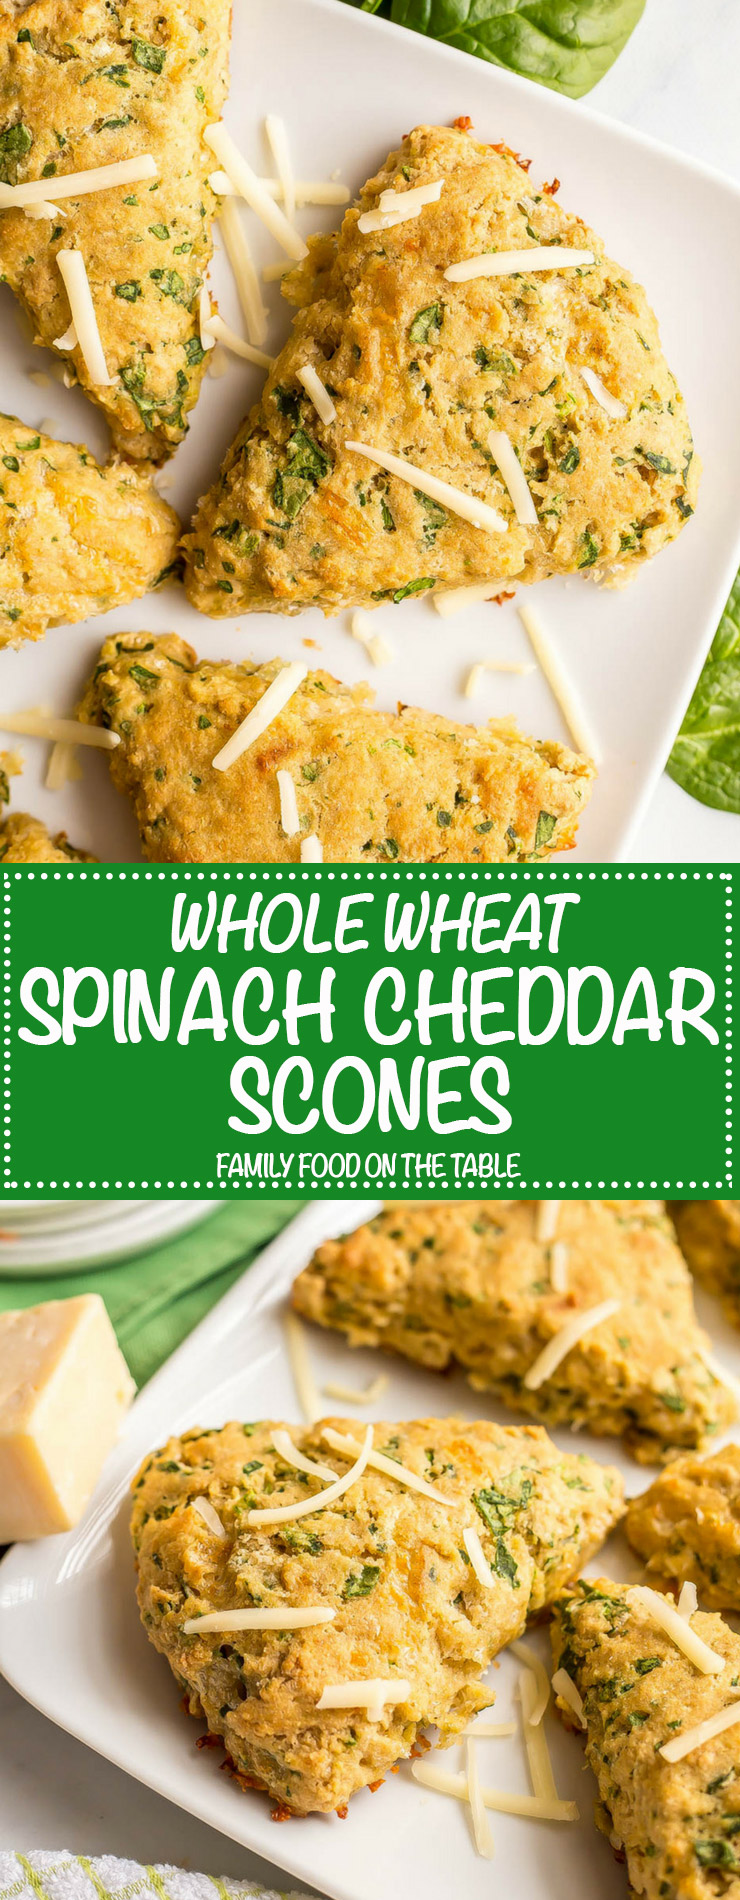 Long photo collage of whole wheat spinach cheddar scones